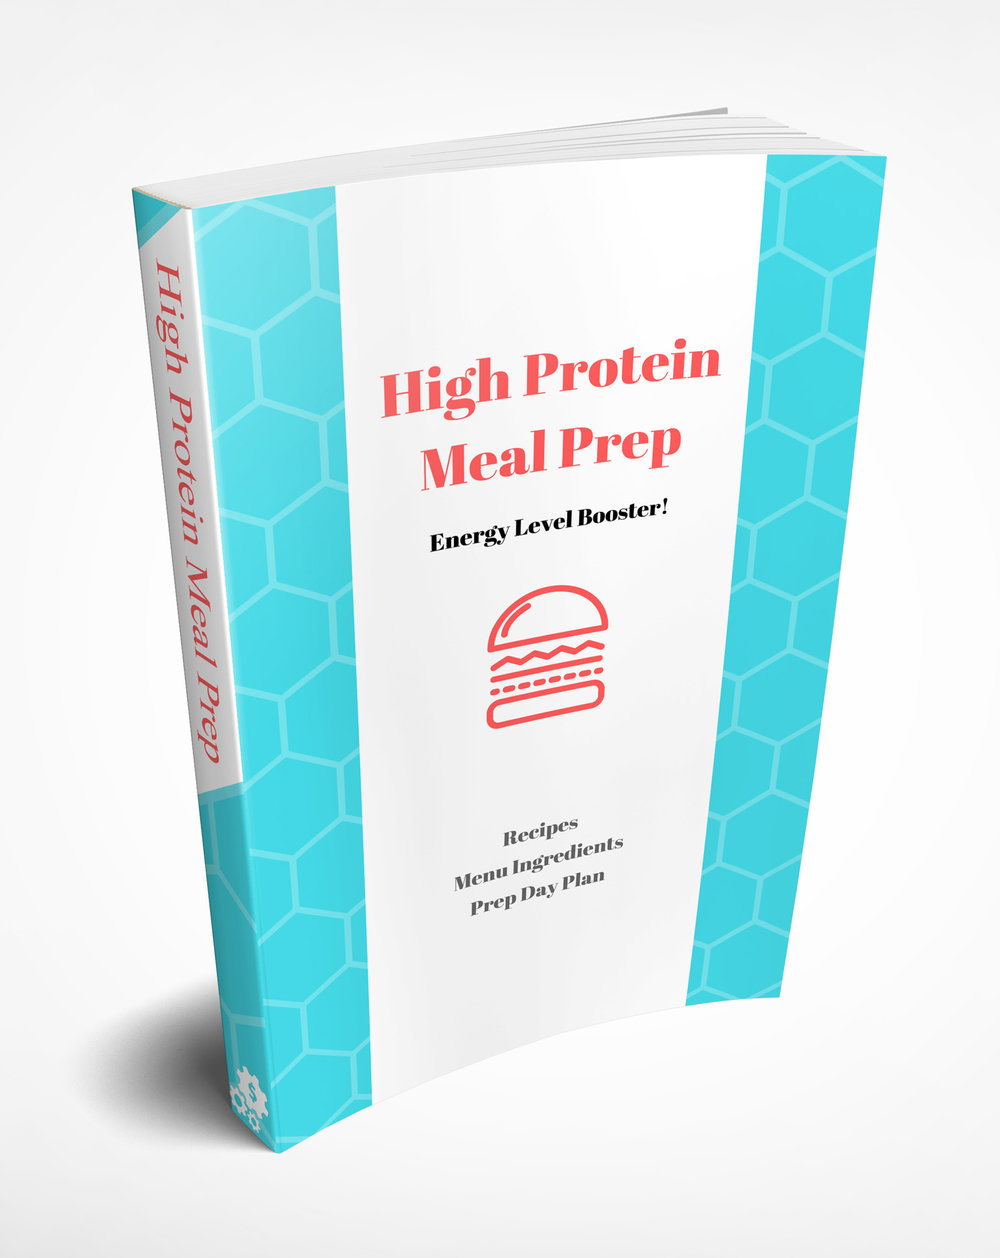 High Protein Meal Prep Mock Up 2.jpg